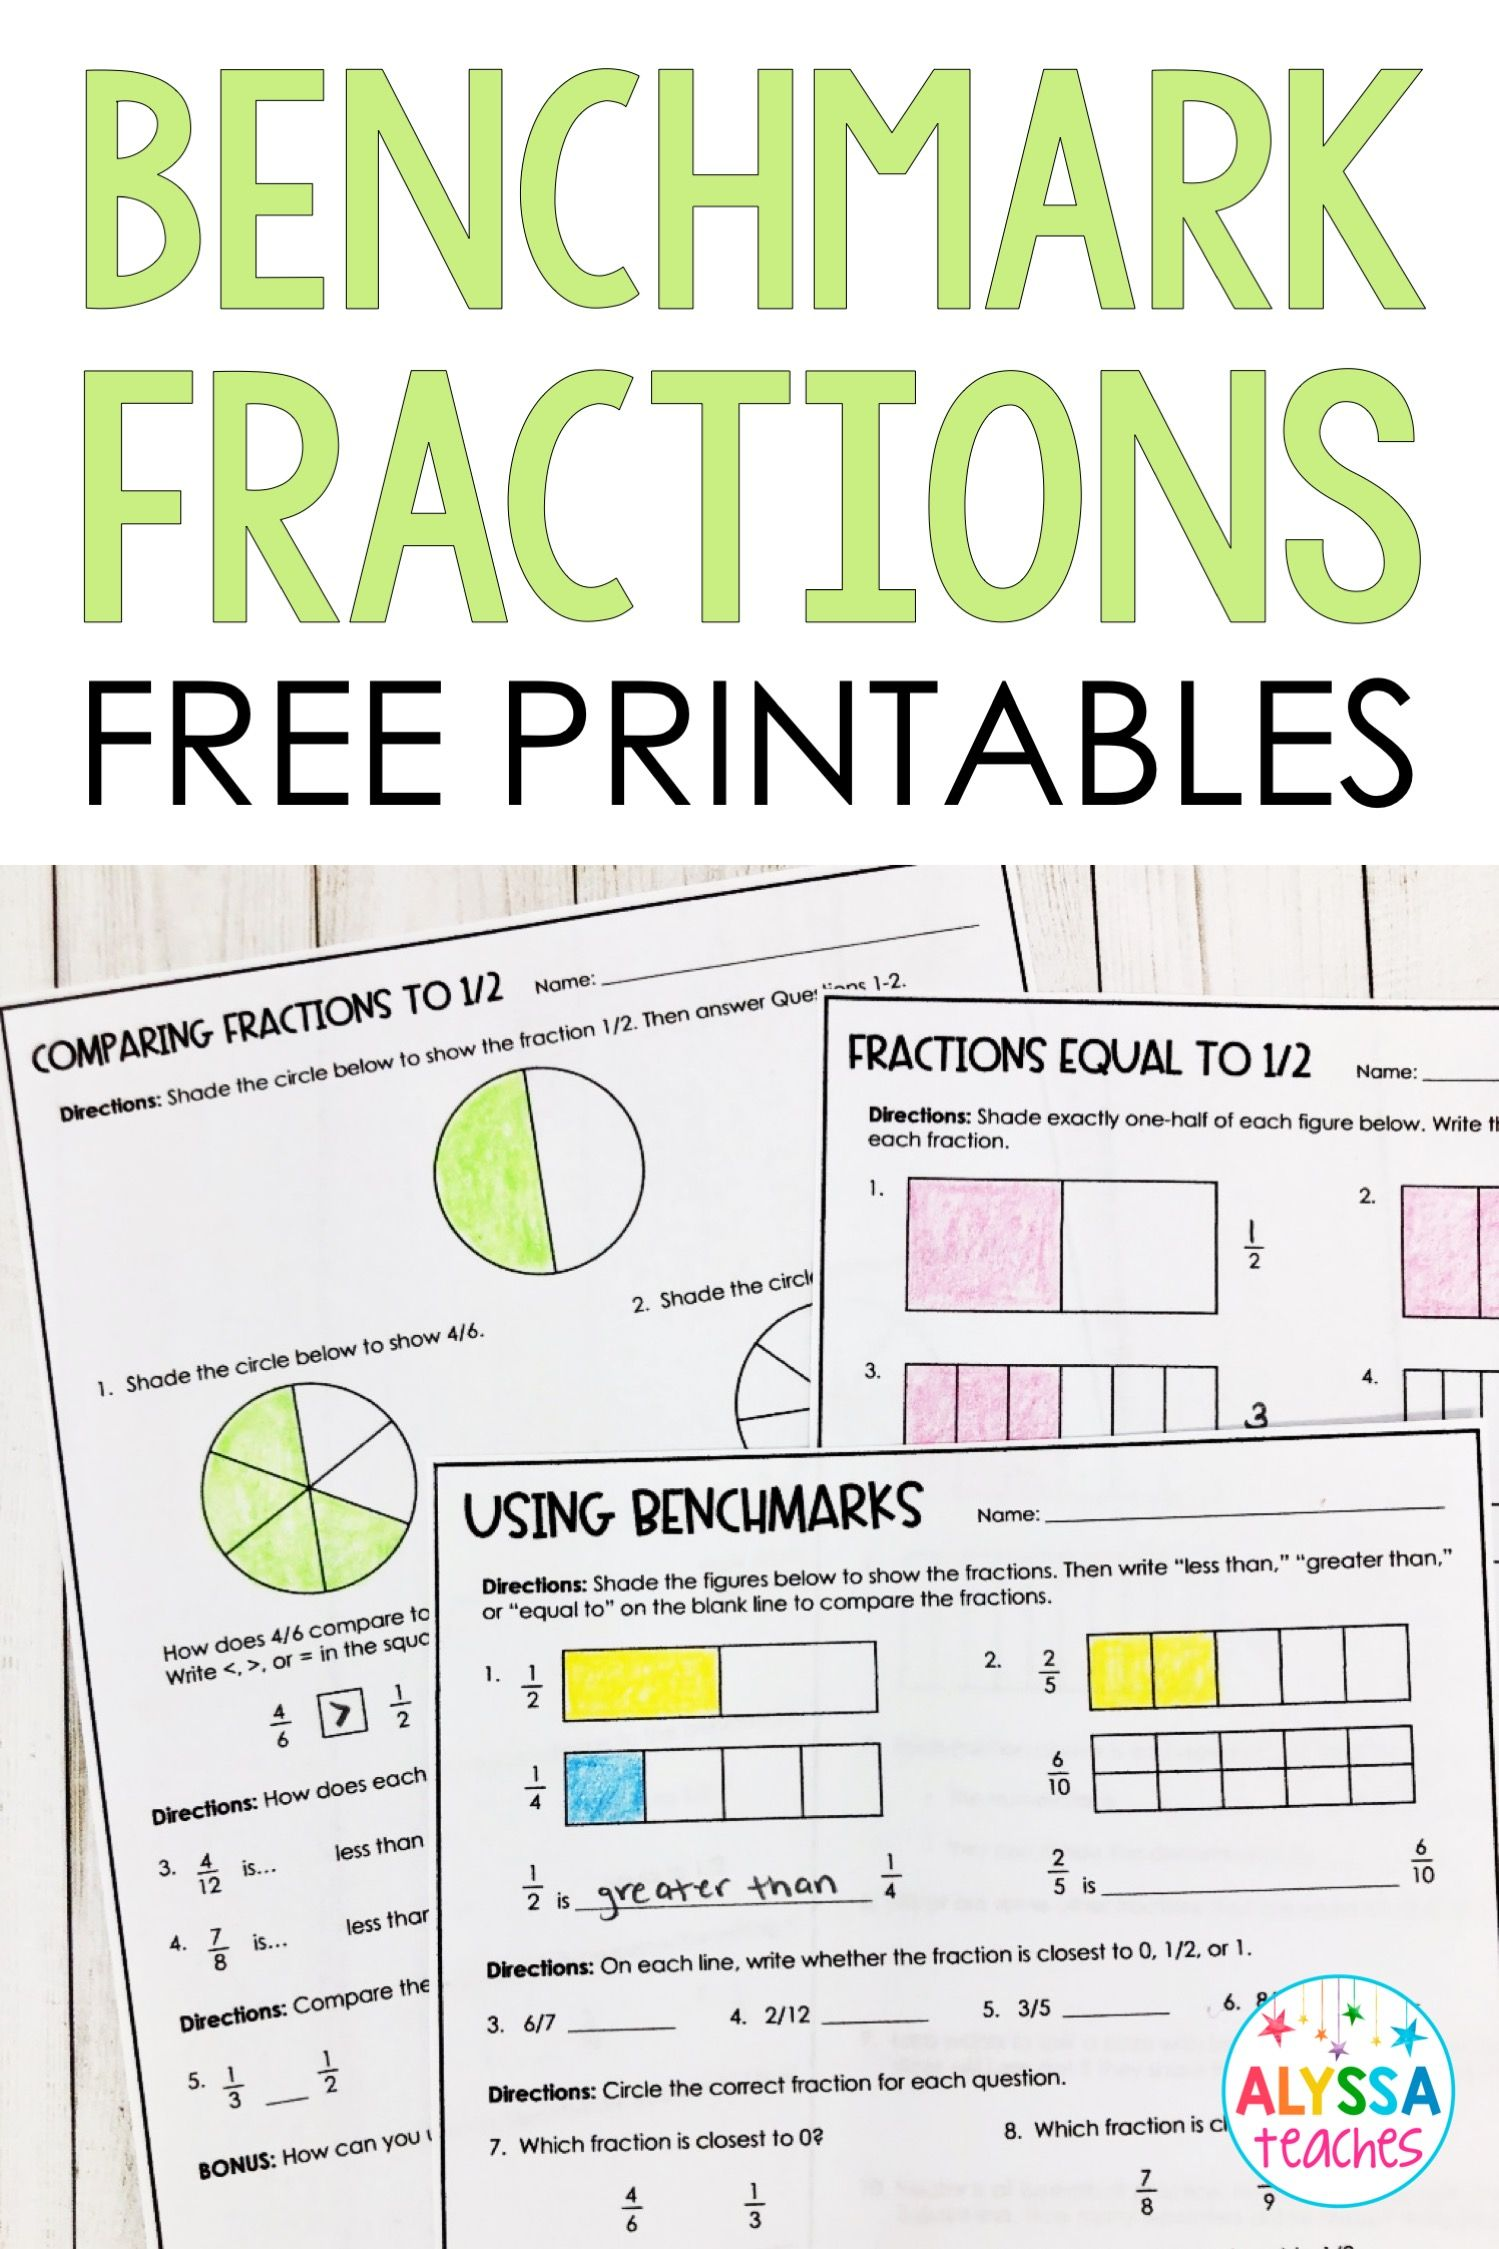 Benchmarks Fractions Poster And Worksheets Benchmark Fractions Fractions Worksheets 4th Grade Fractions